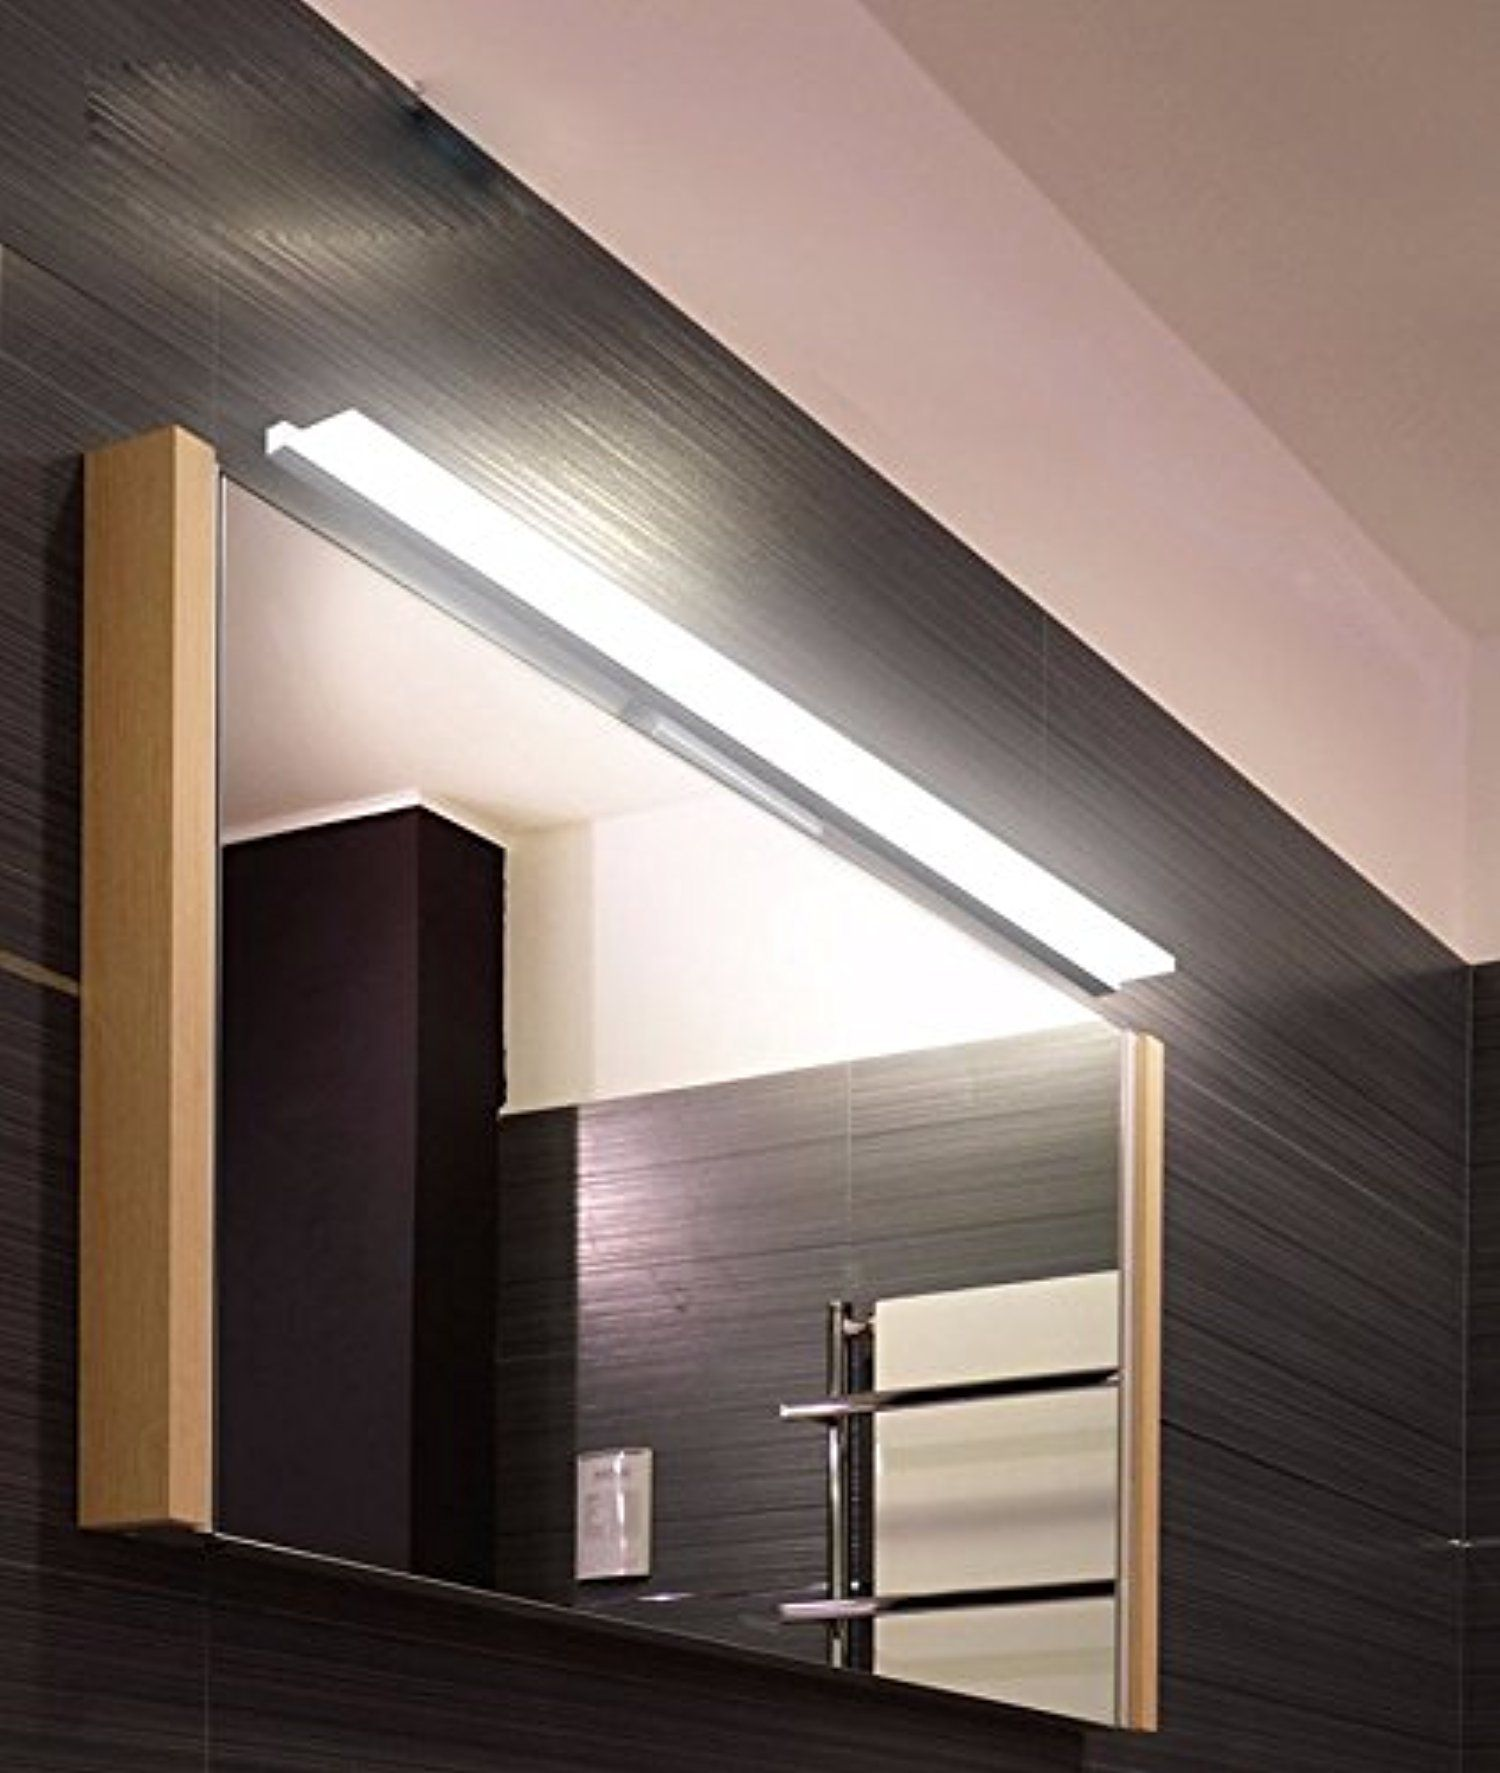 Modern Wall Light Led Acrylic Bathroom Lighting Contemporary Design Bright Vanity Lights Waterproof Lamp Fixture 16 47 Inches Warm White 39 Inch